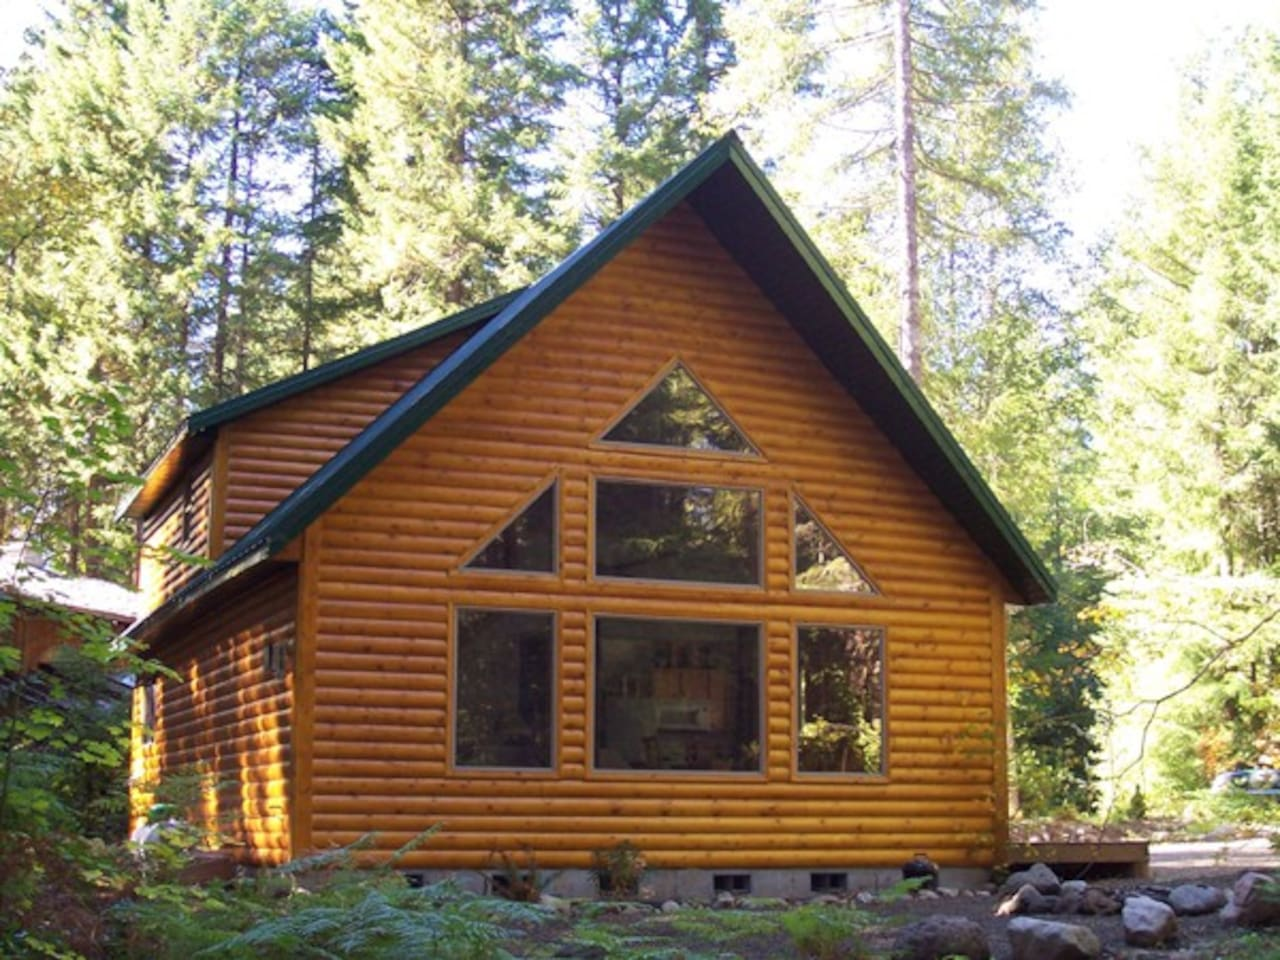 mt jane tilly load off frame hood winter cabins camping take hut a img